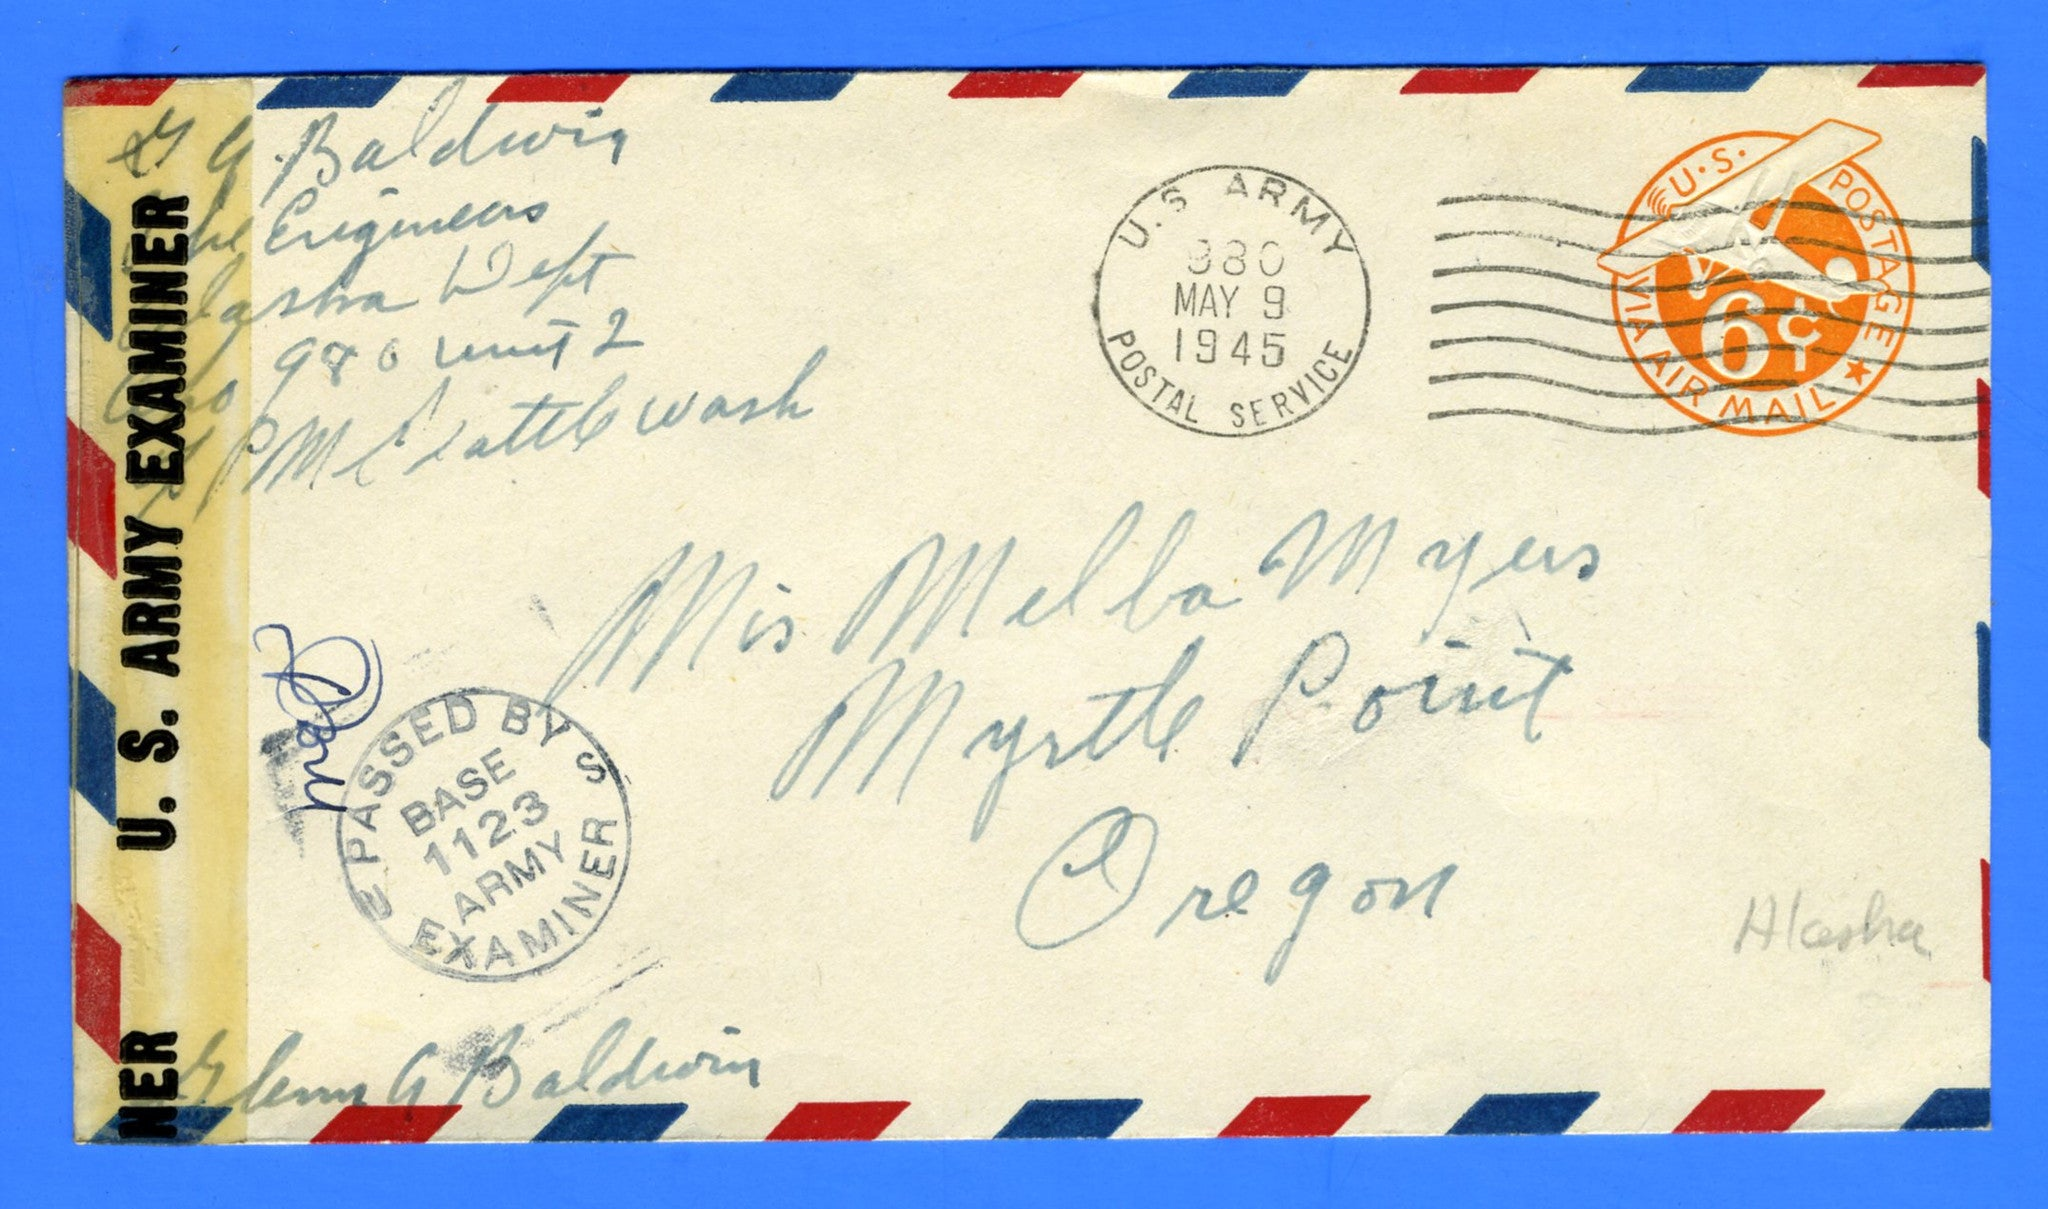 Soldier's Censored Mail APO 980 Adak Island, Alaska May 9, 1945